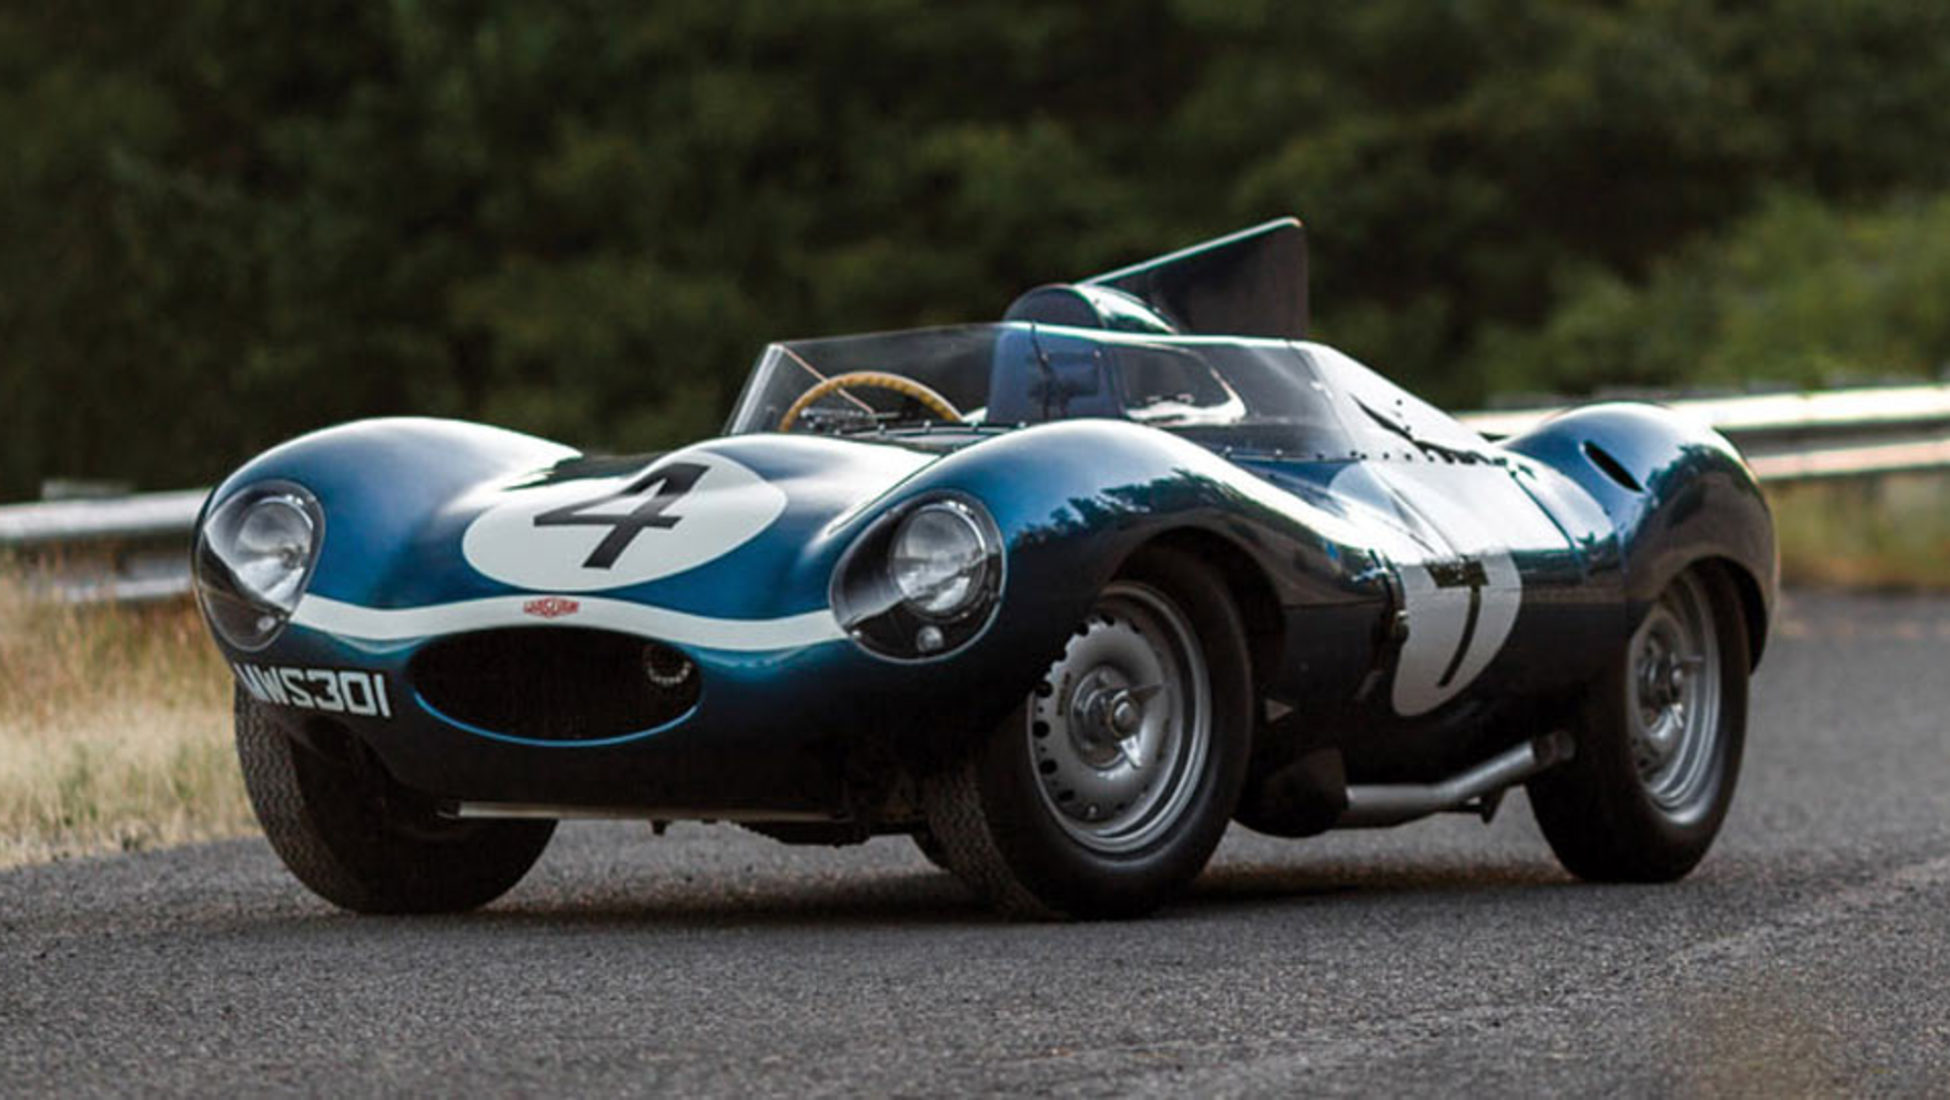 5 of the Most Expensive Classic Cars - Catawiki